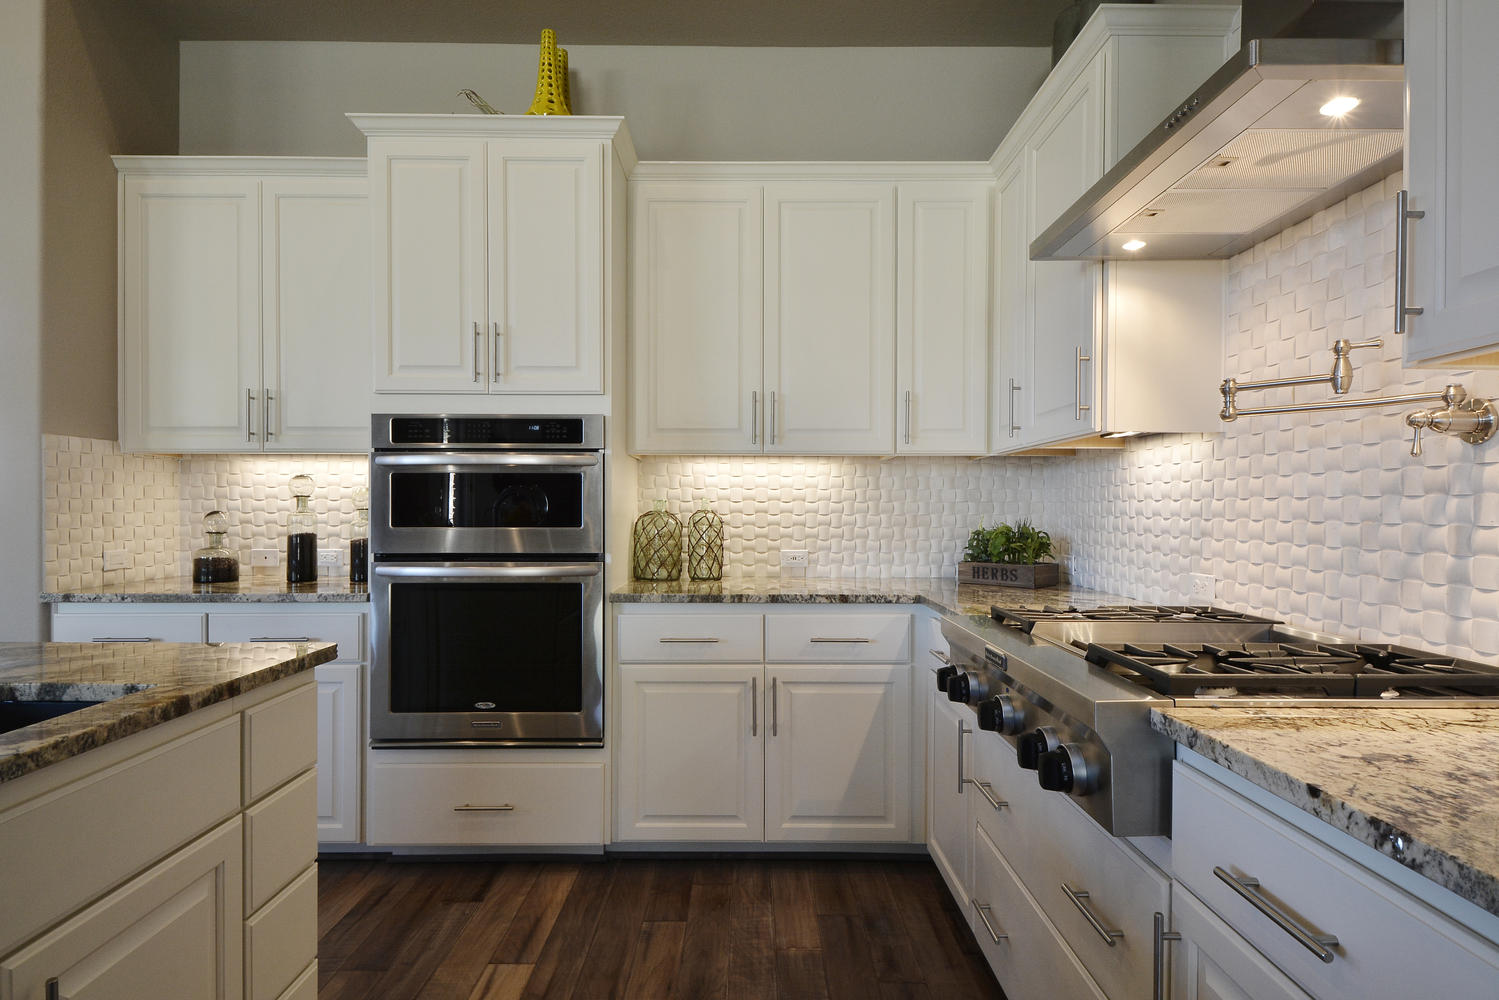 White kitchen cabinets burrows cabinets central texas for White kitchen cupboards